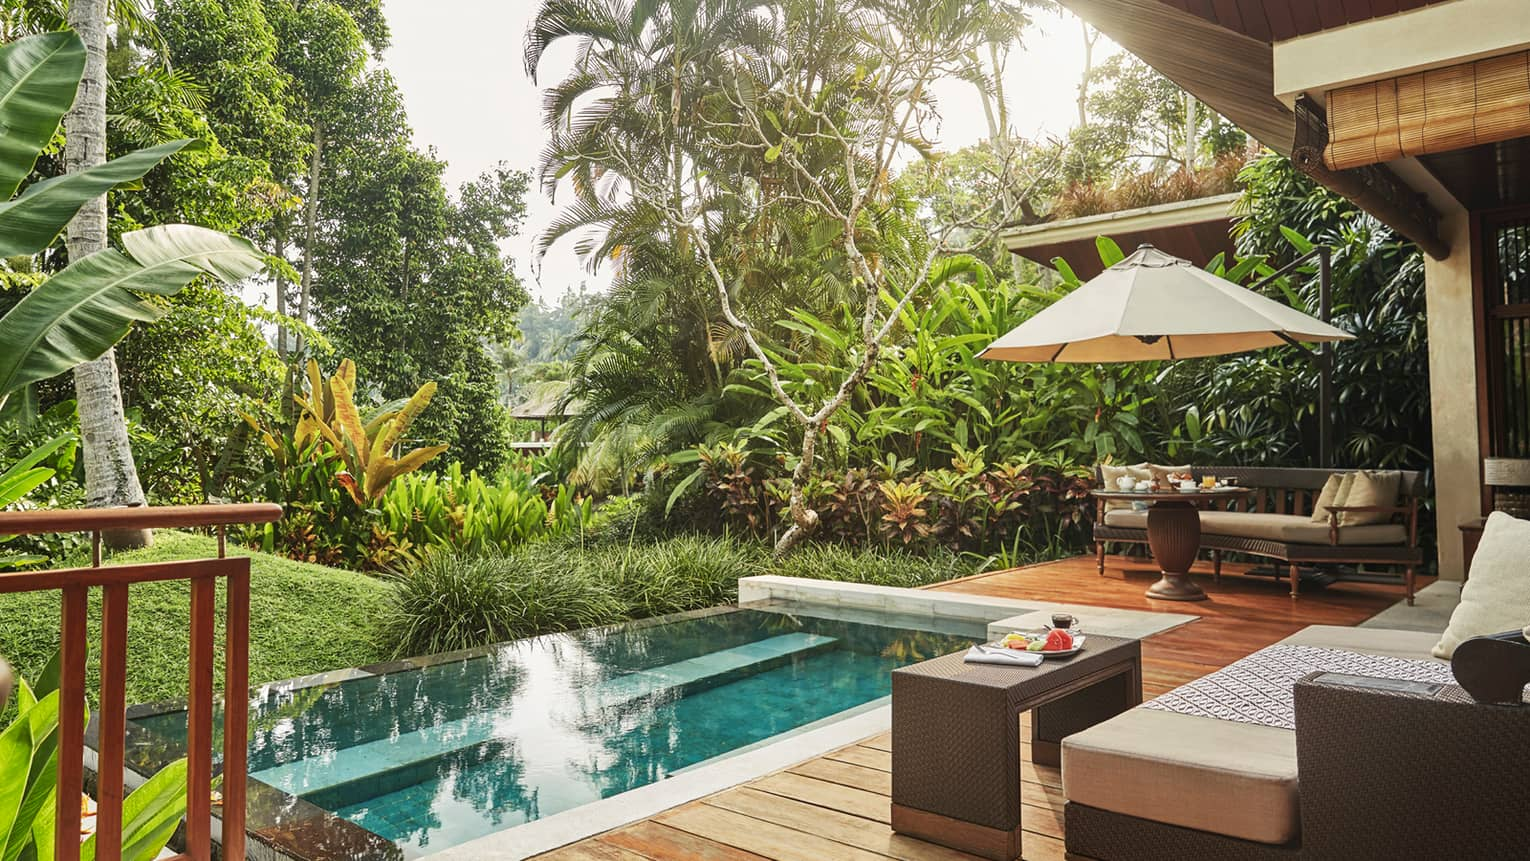 Small rectangular plunge pool off villa patio, surrounded by green tropical plants